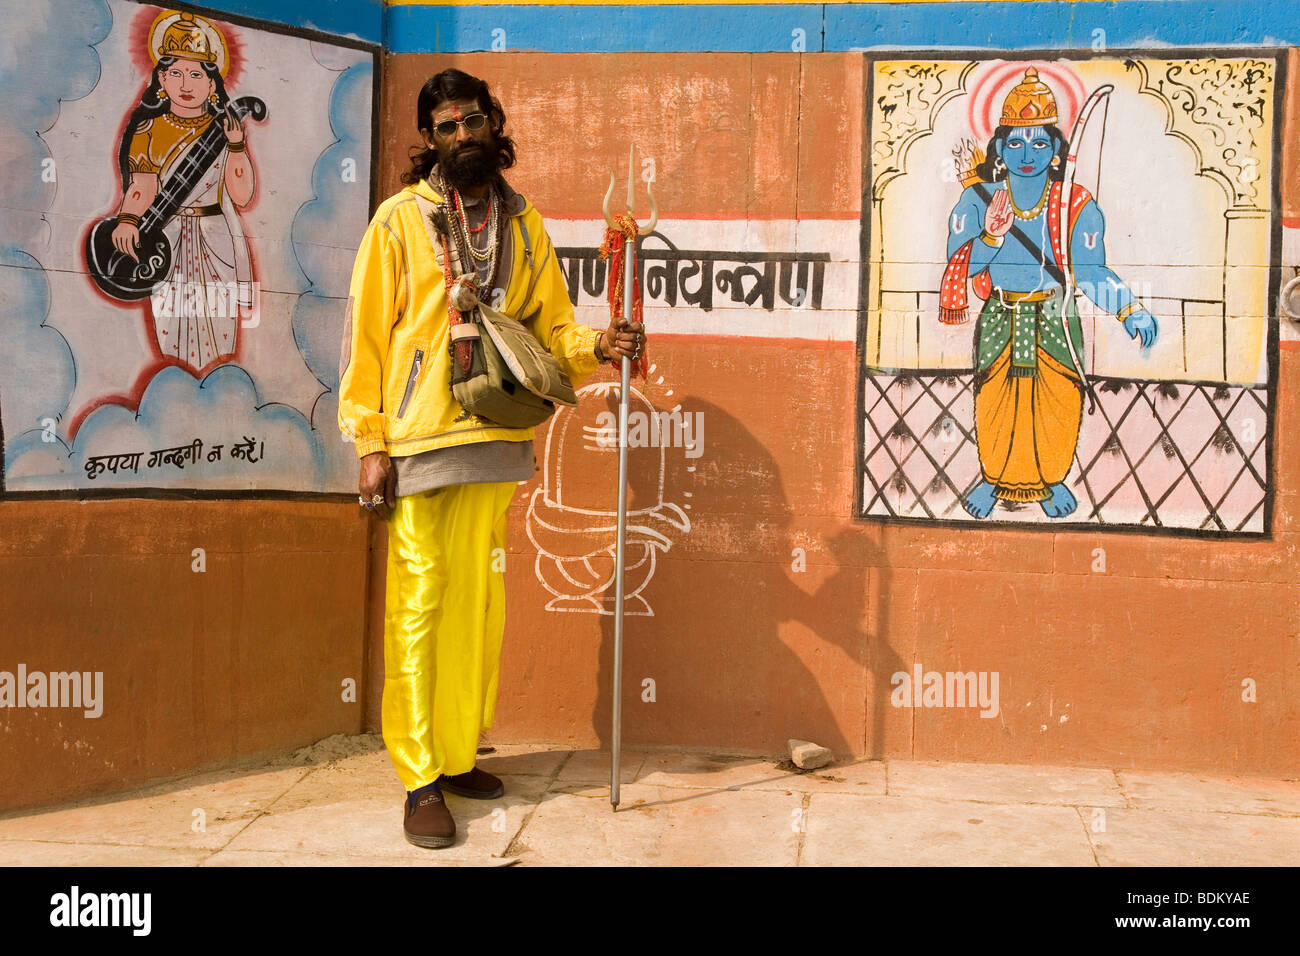 A Sadhu in the Indian city of Varanasi (Benares). He stands in front of paintings of deities on a brick wall. - Stock Image